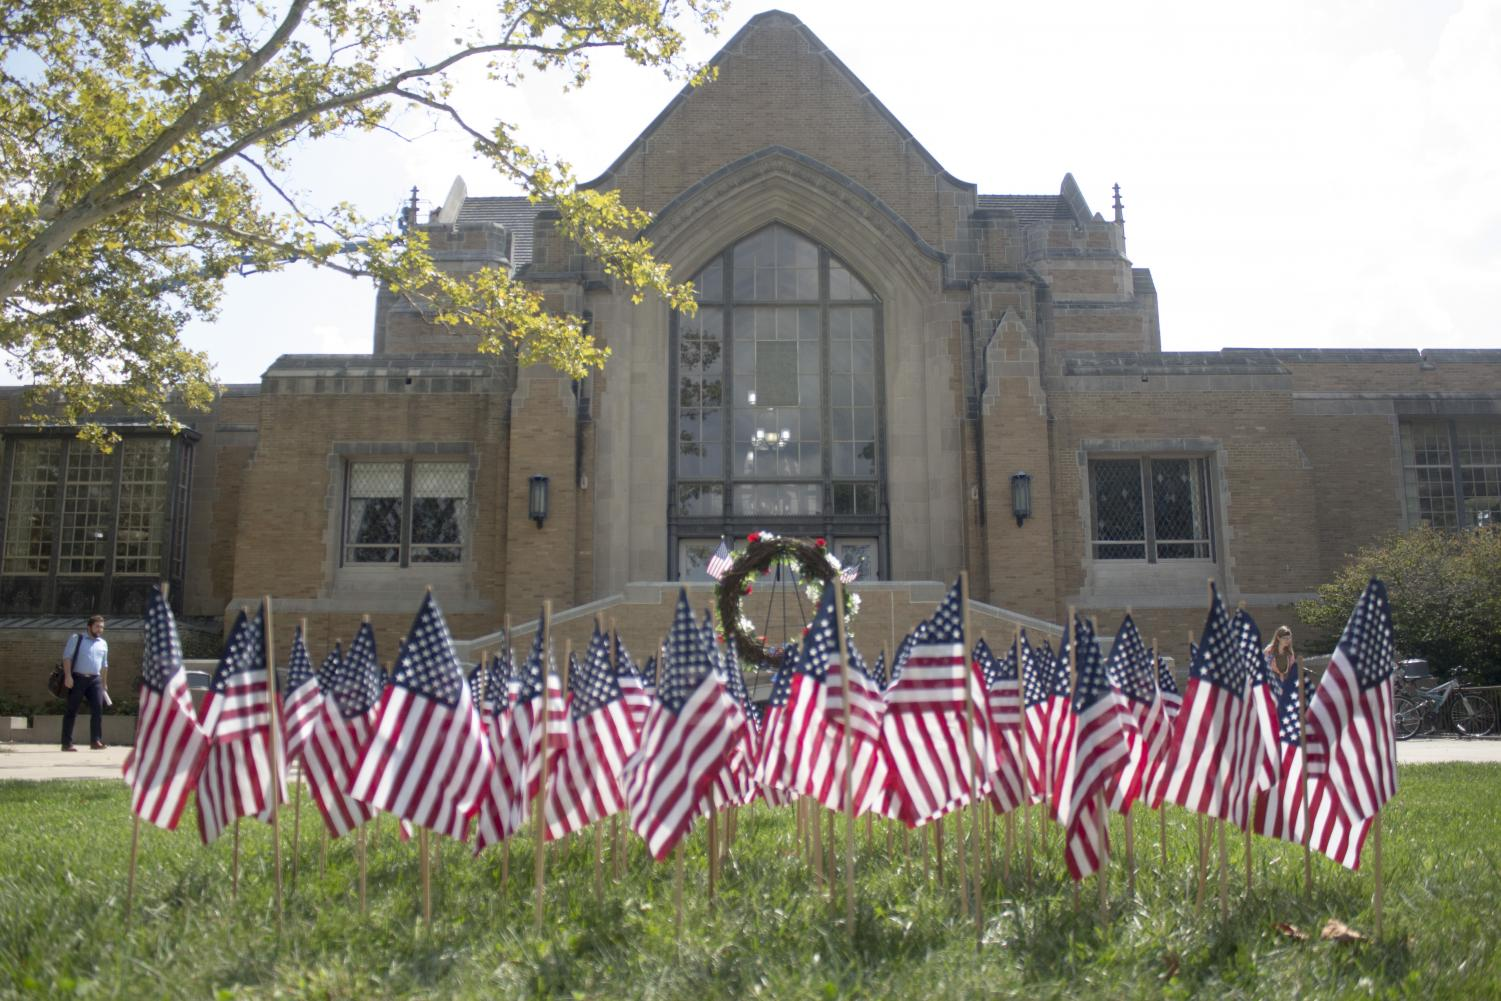 The 9/11 memorial is set up in front of the Booth Library to honor the heroes from 9/11. 2019 marks the 18th anniversary of the attacks